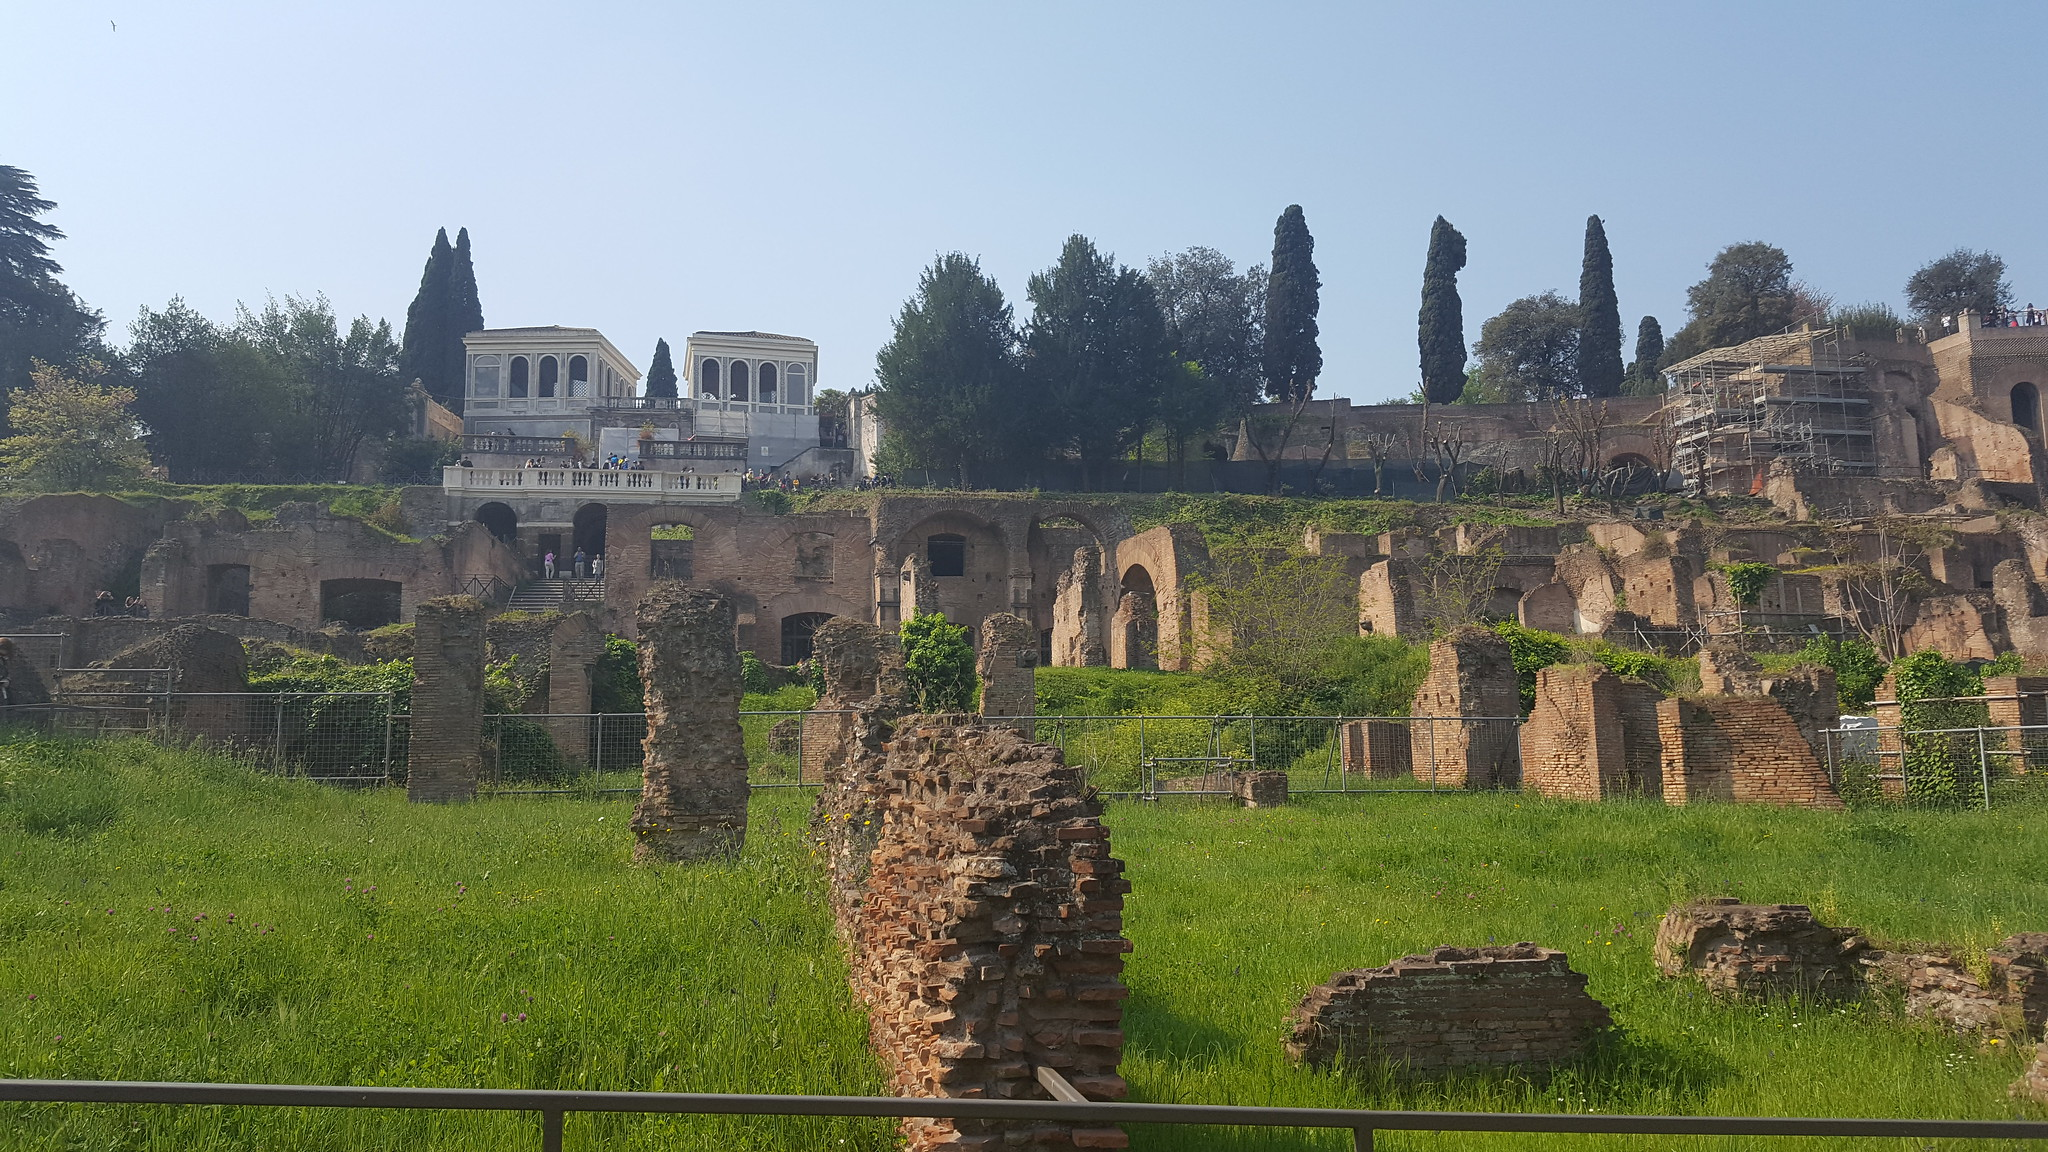 Forum Romanum (Roman Forum) – After Antiquity